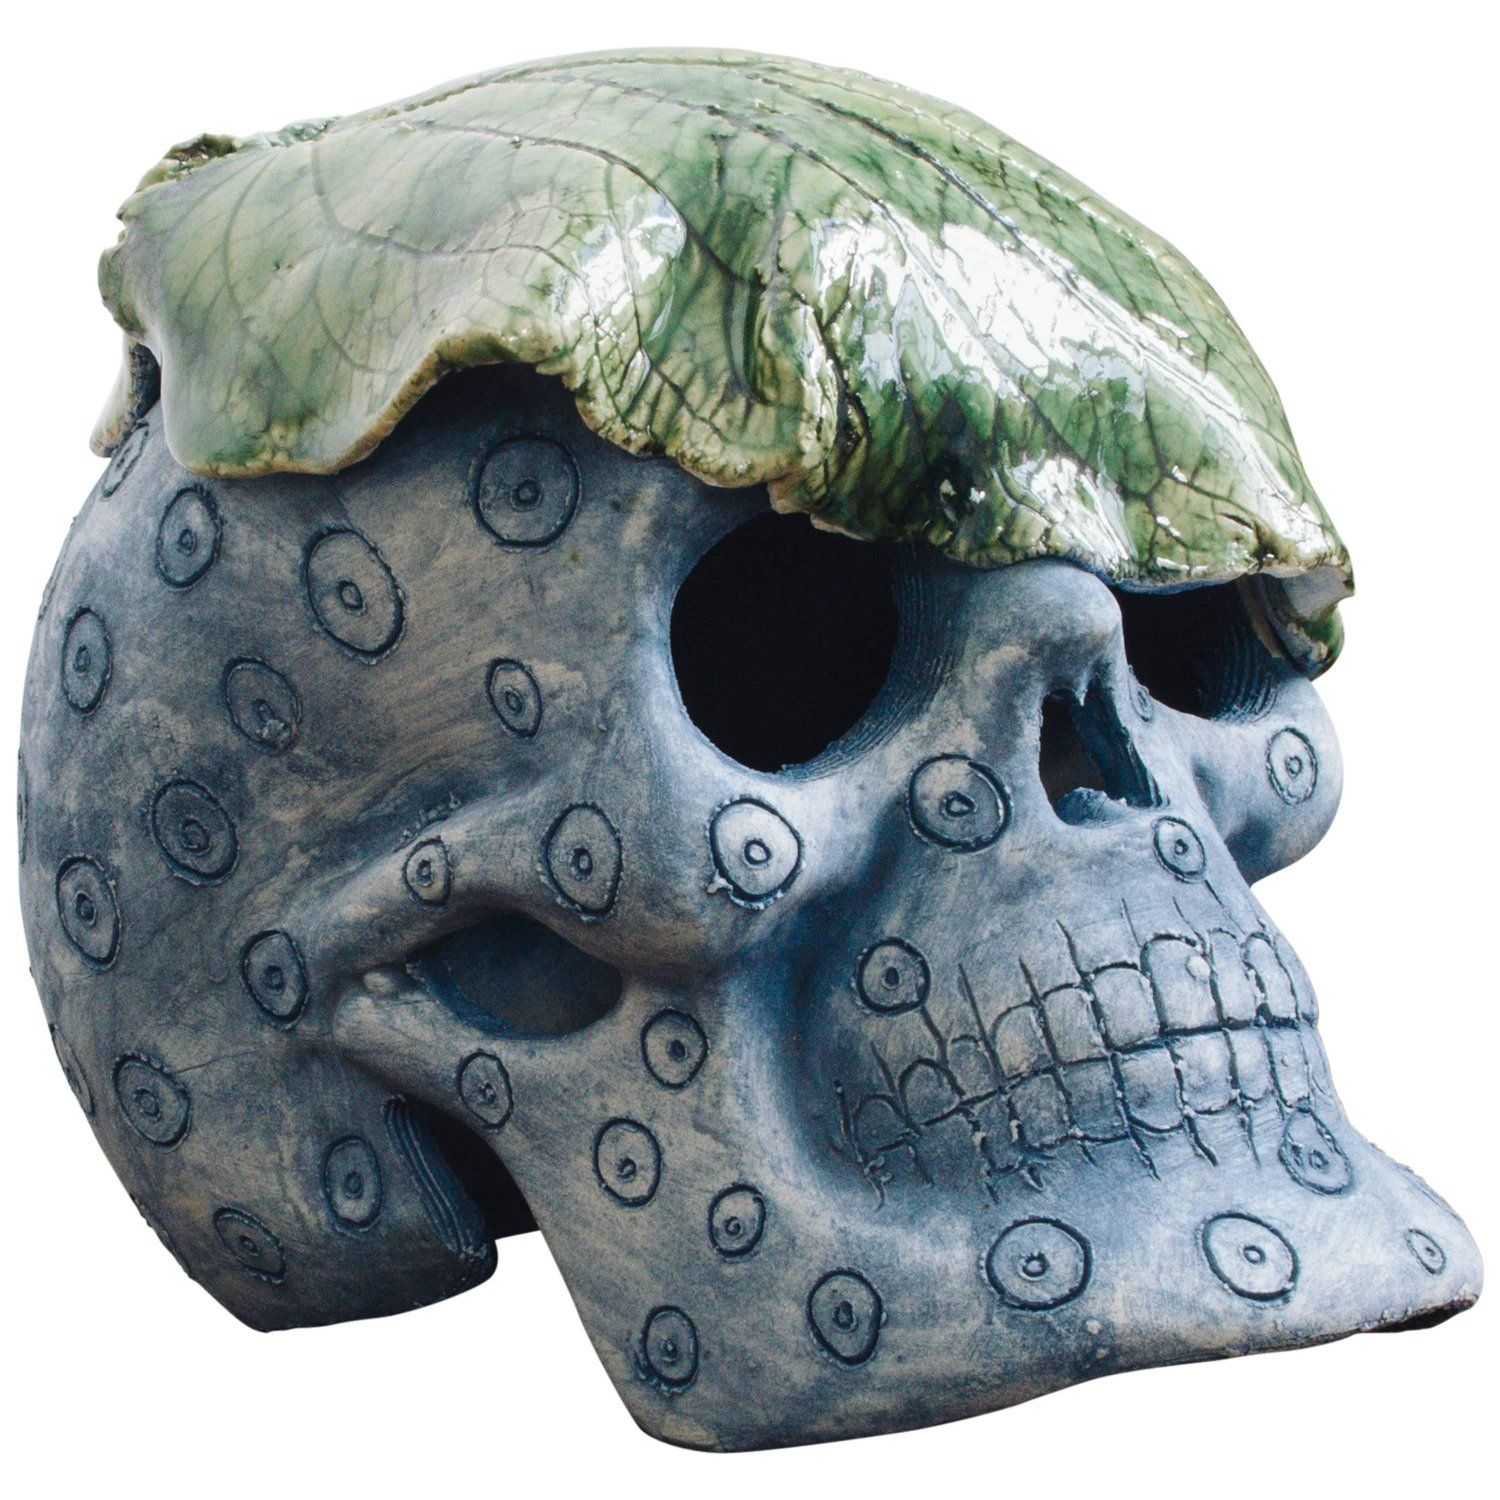 Mexican Day of the Dead skull - buy it now at Eterne